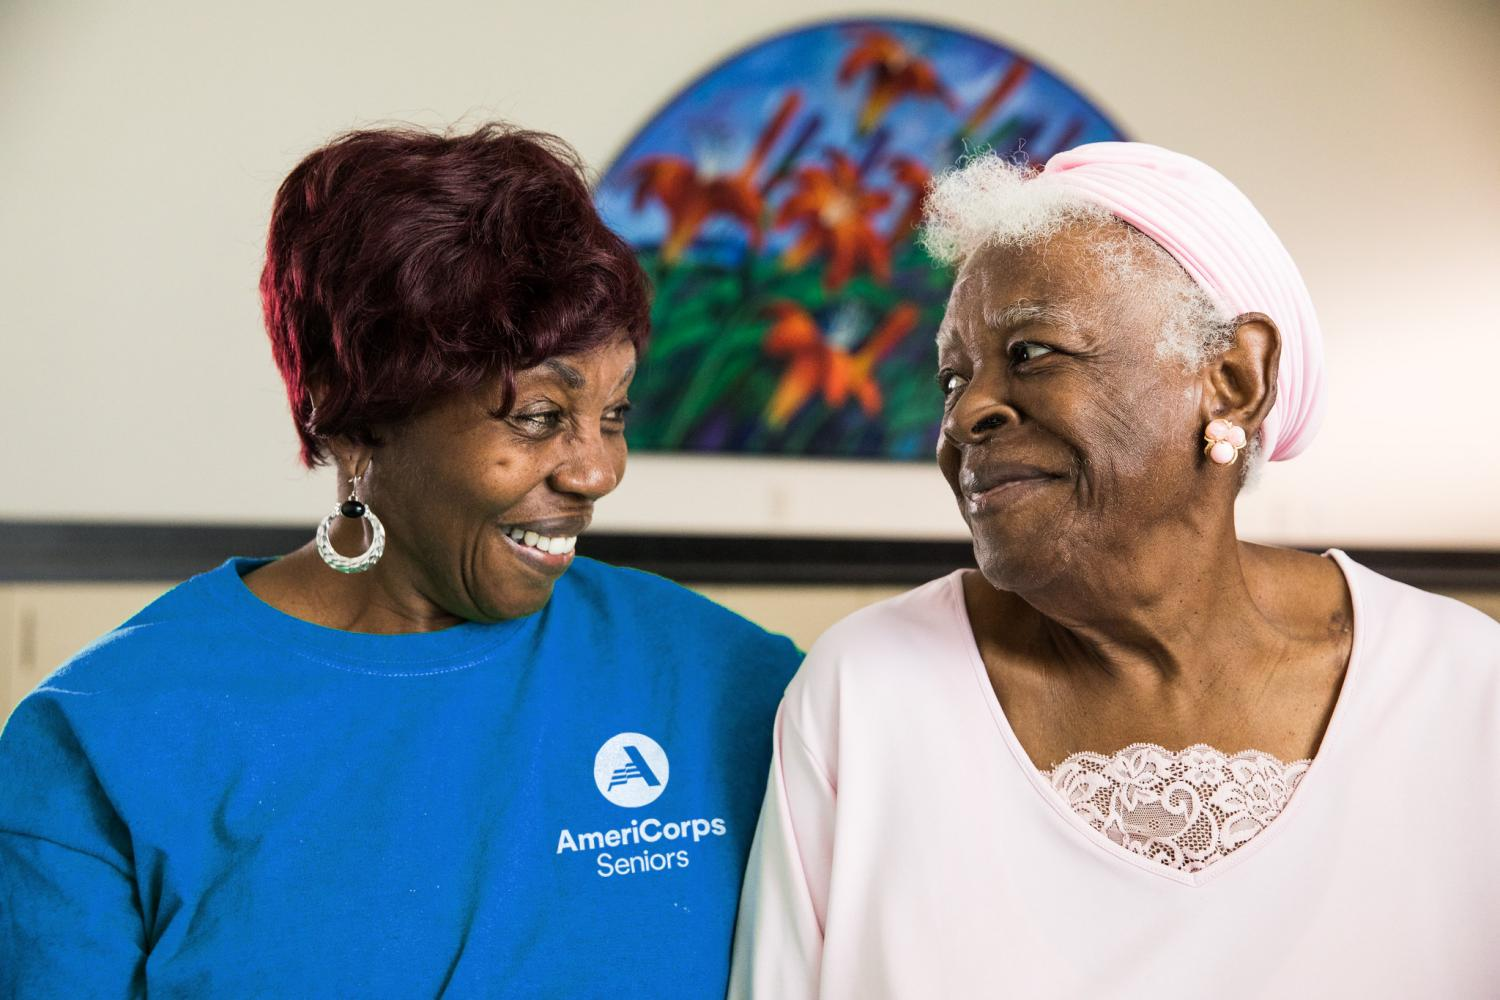 AmeriCorps Seniors volunteer with fellow senior, laughing at senior's house